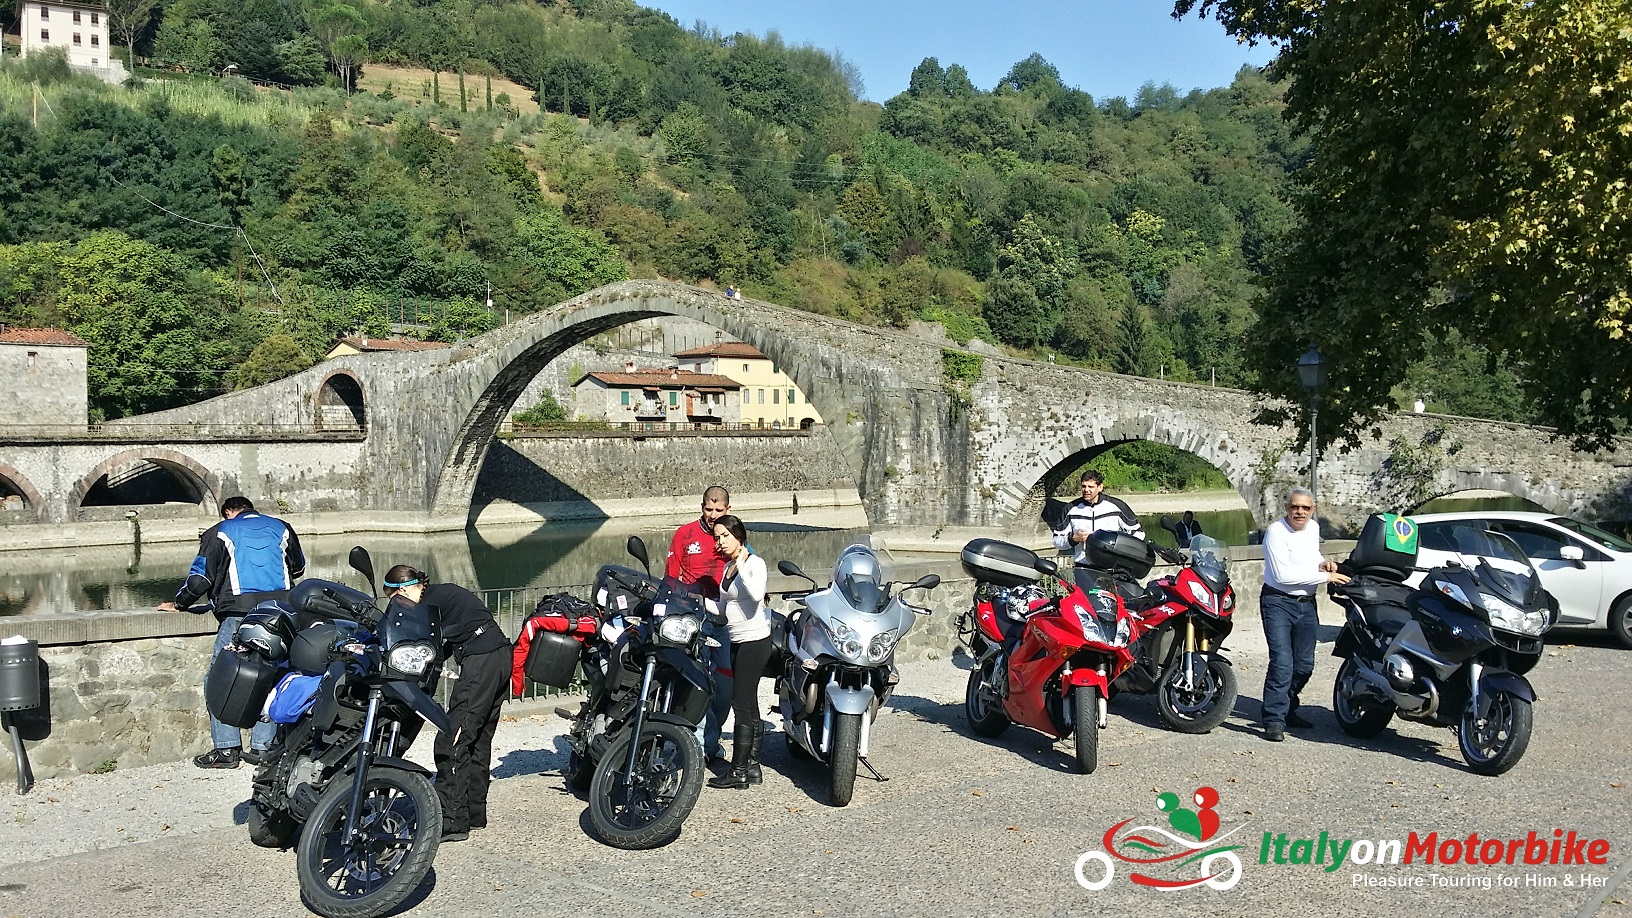 Motorcycles in front of the humpback bridge in Borgo a Mozzano on our top class motorcycle tour of Italy and a MotoGP